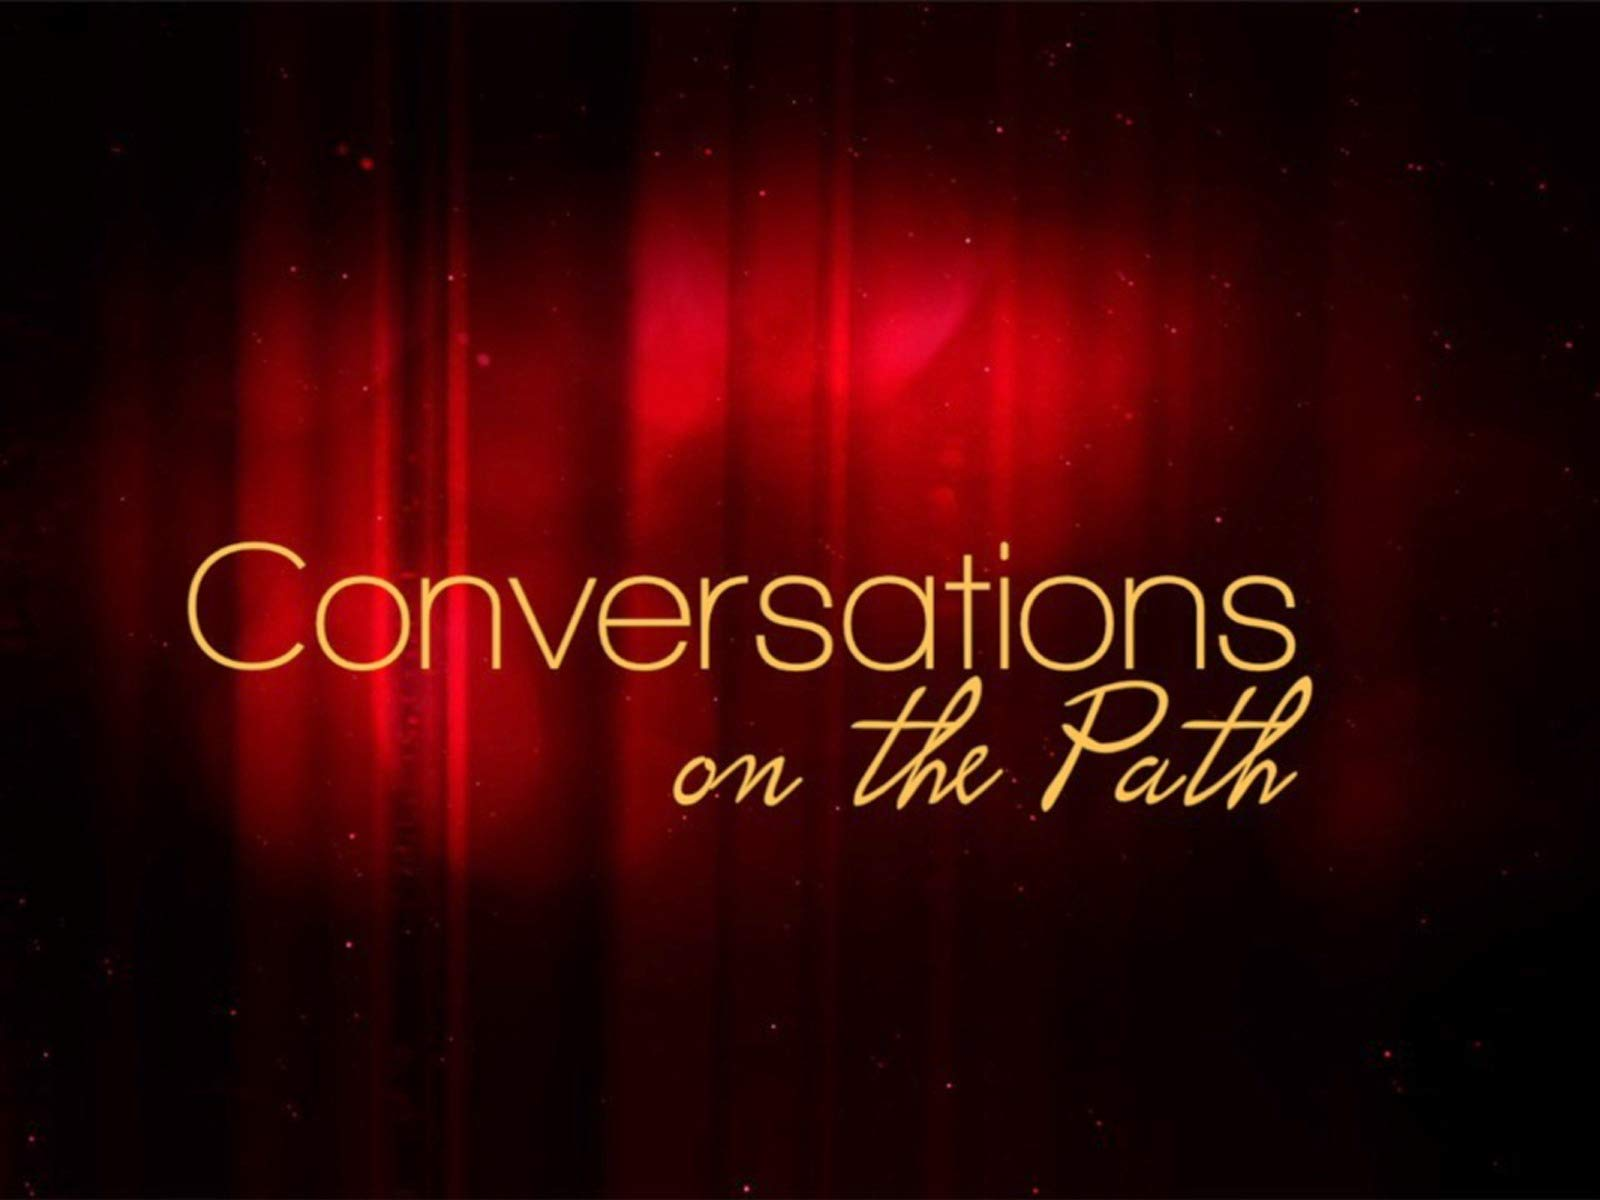 Conversations on the Path